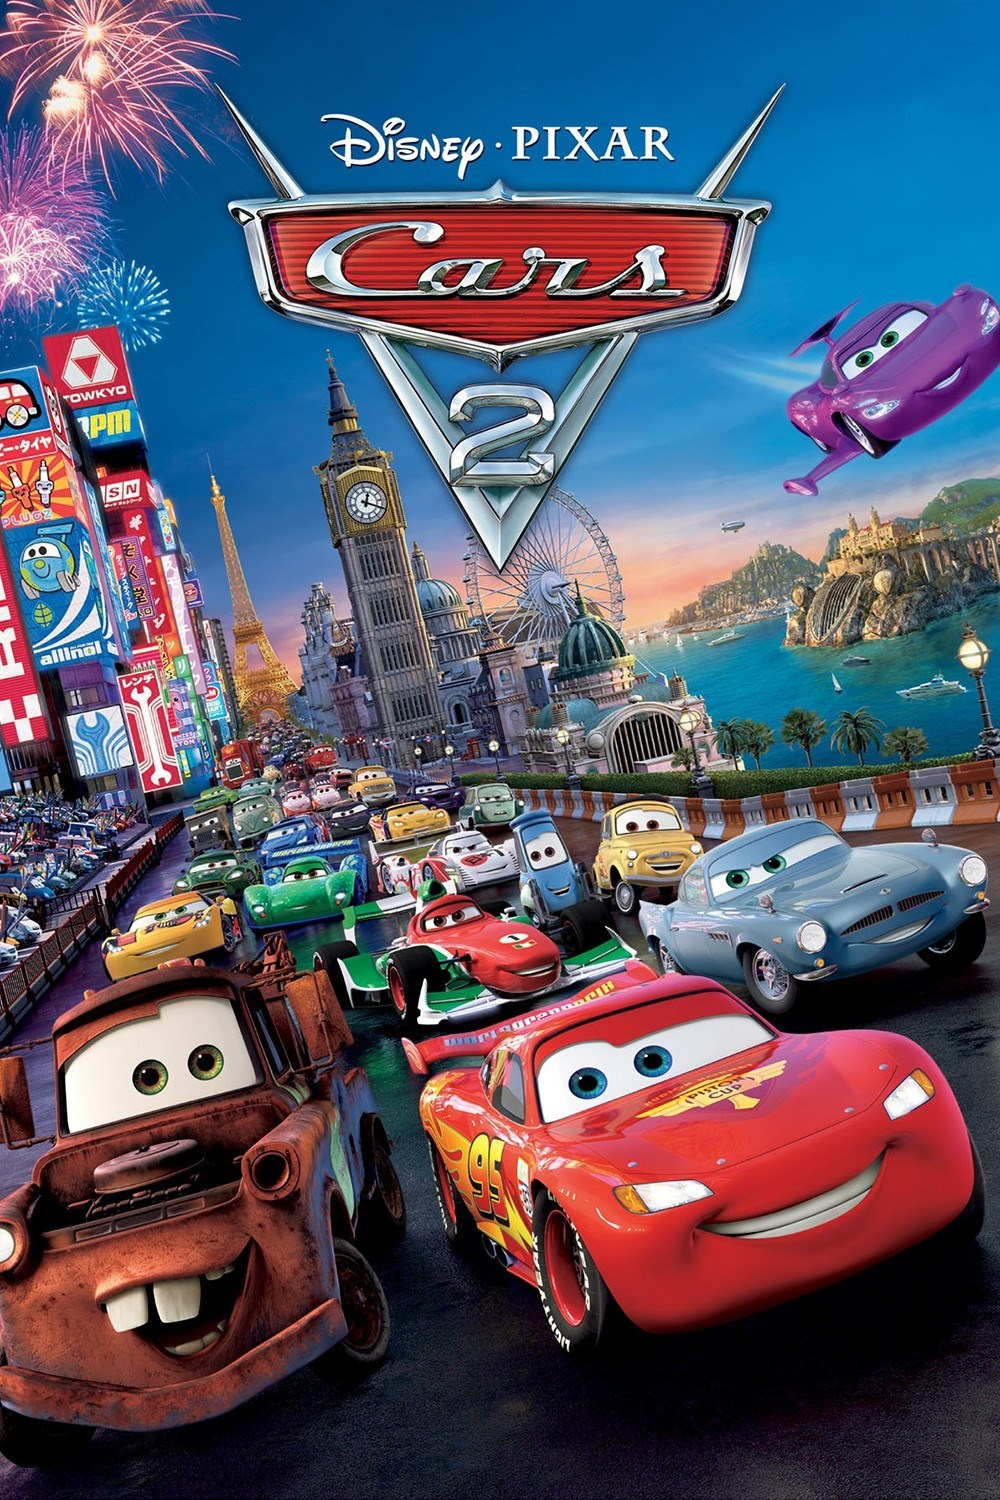 Cars 2 (2011; animated)